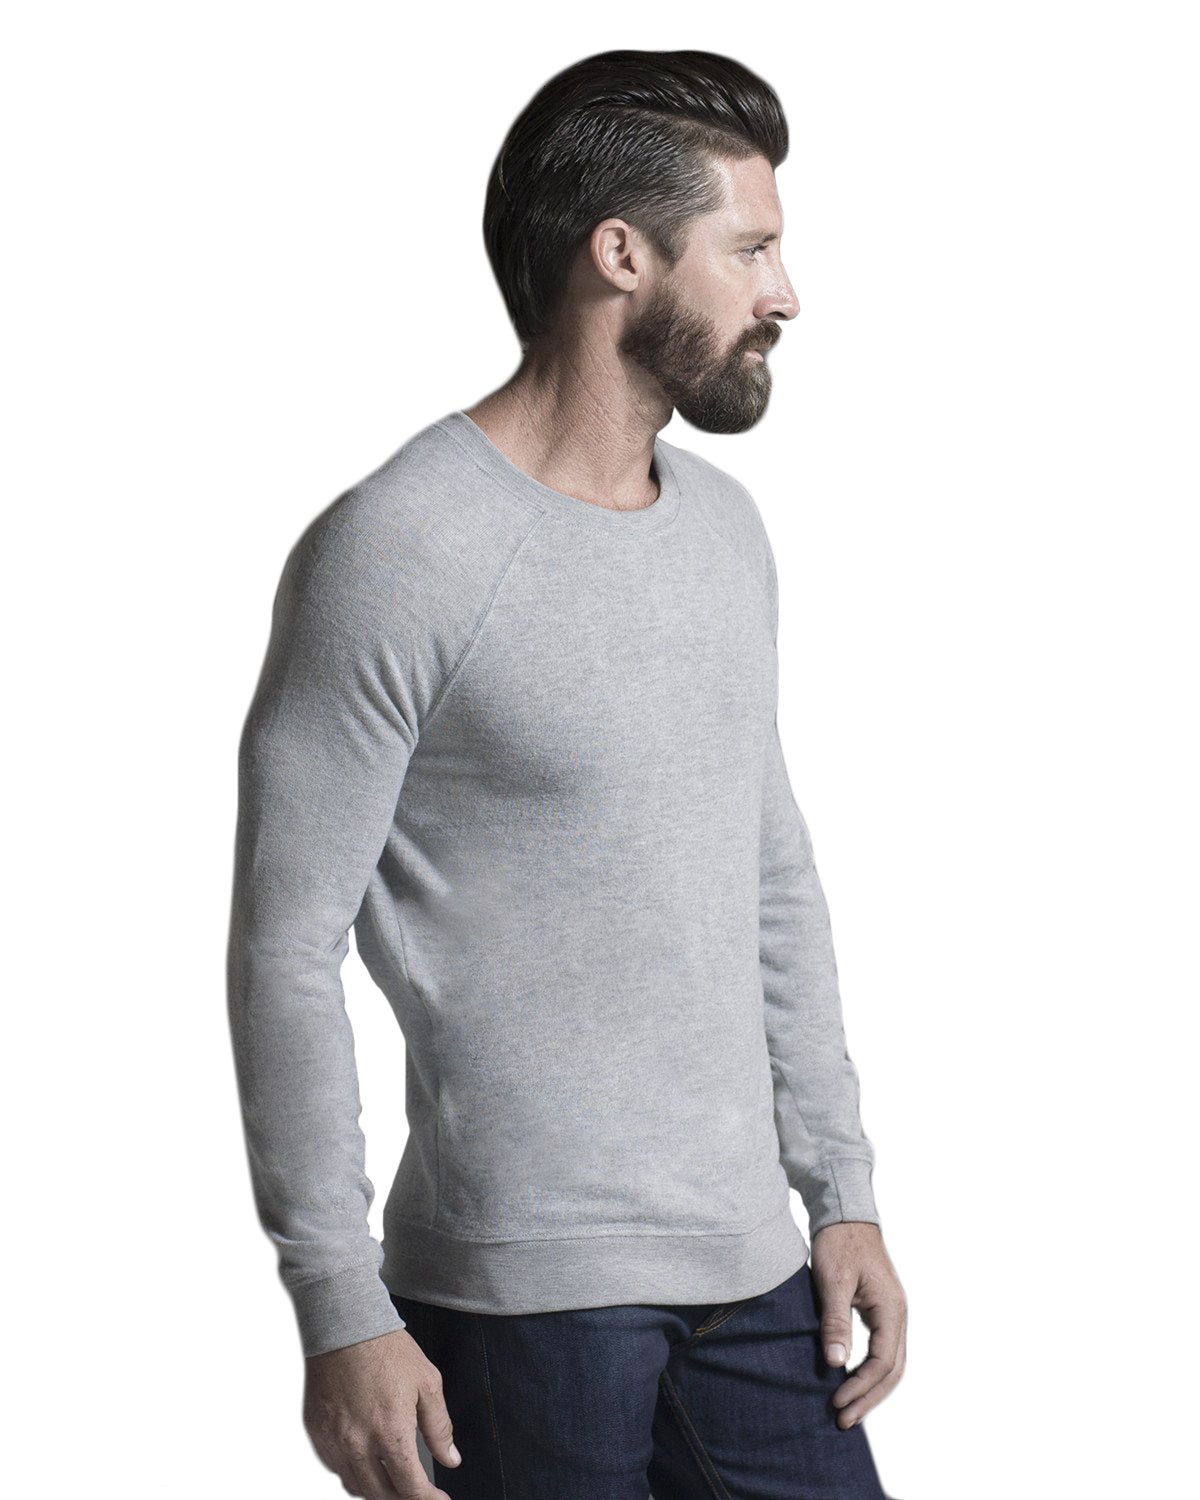 Knit Pullover: Light Gray